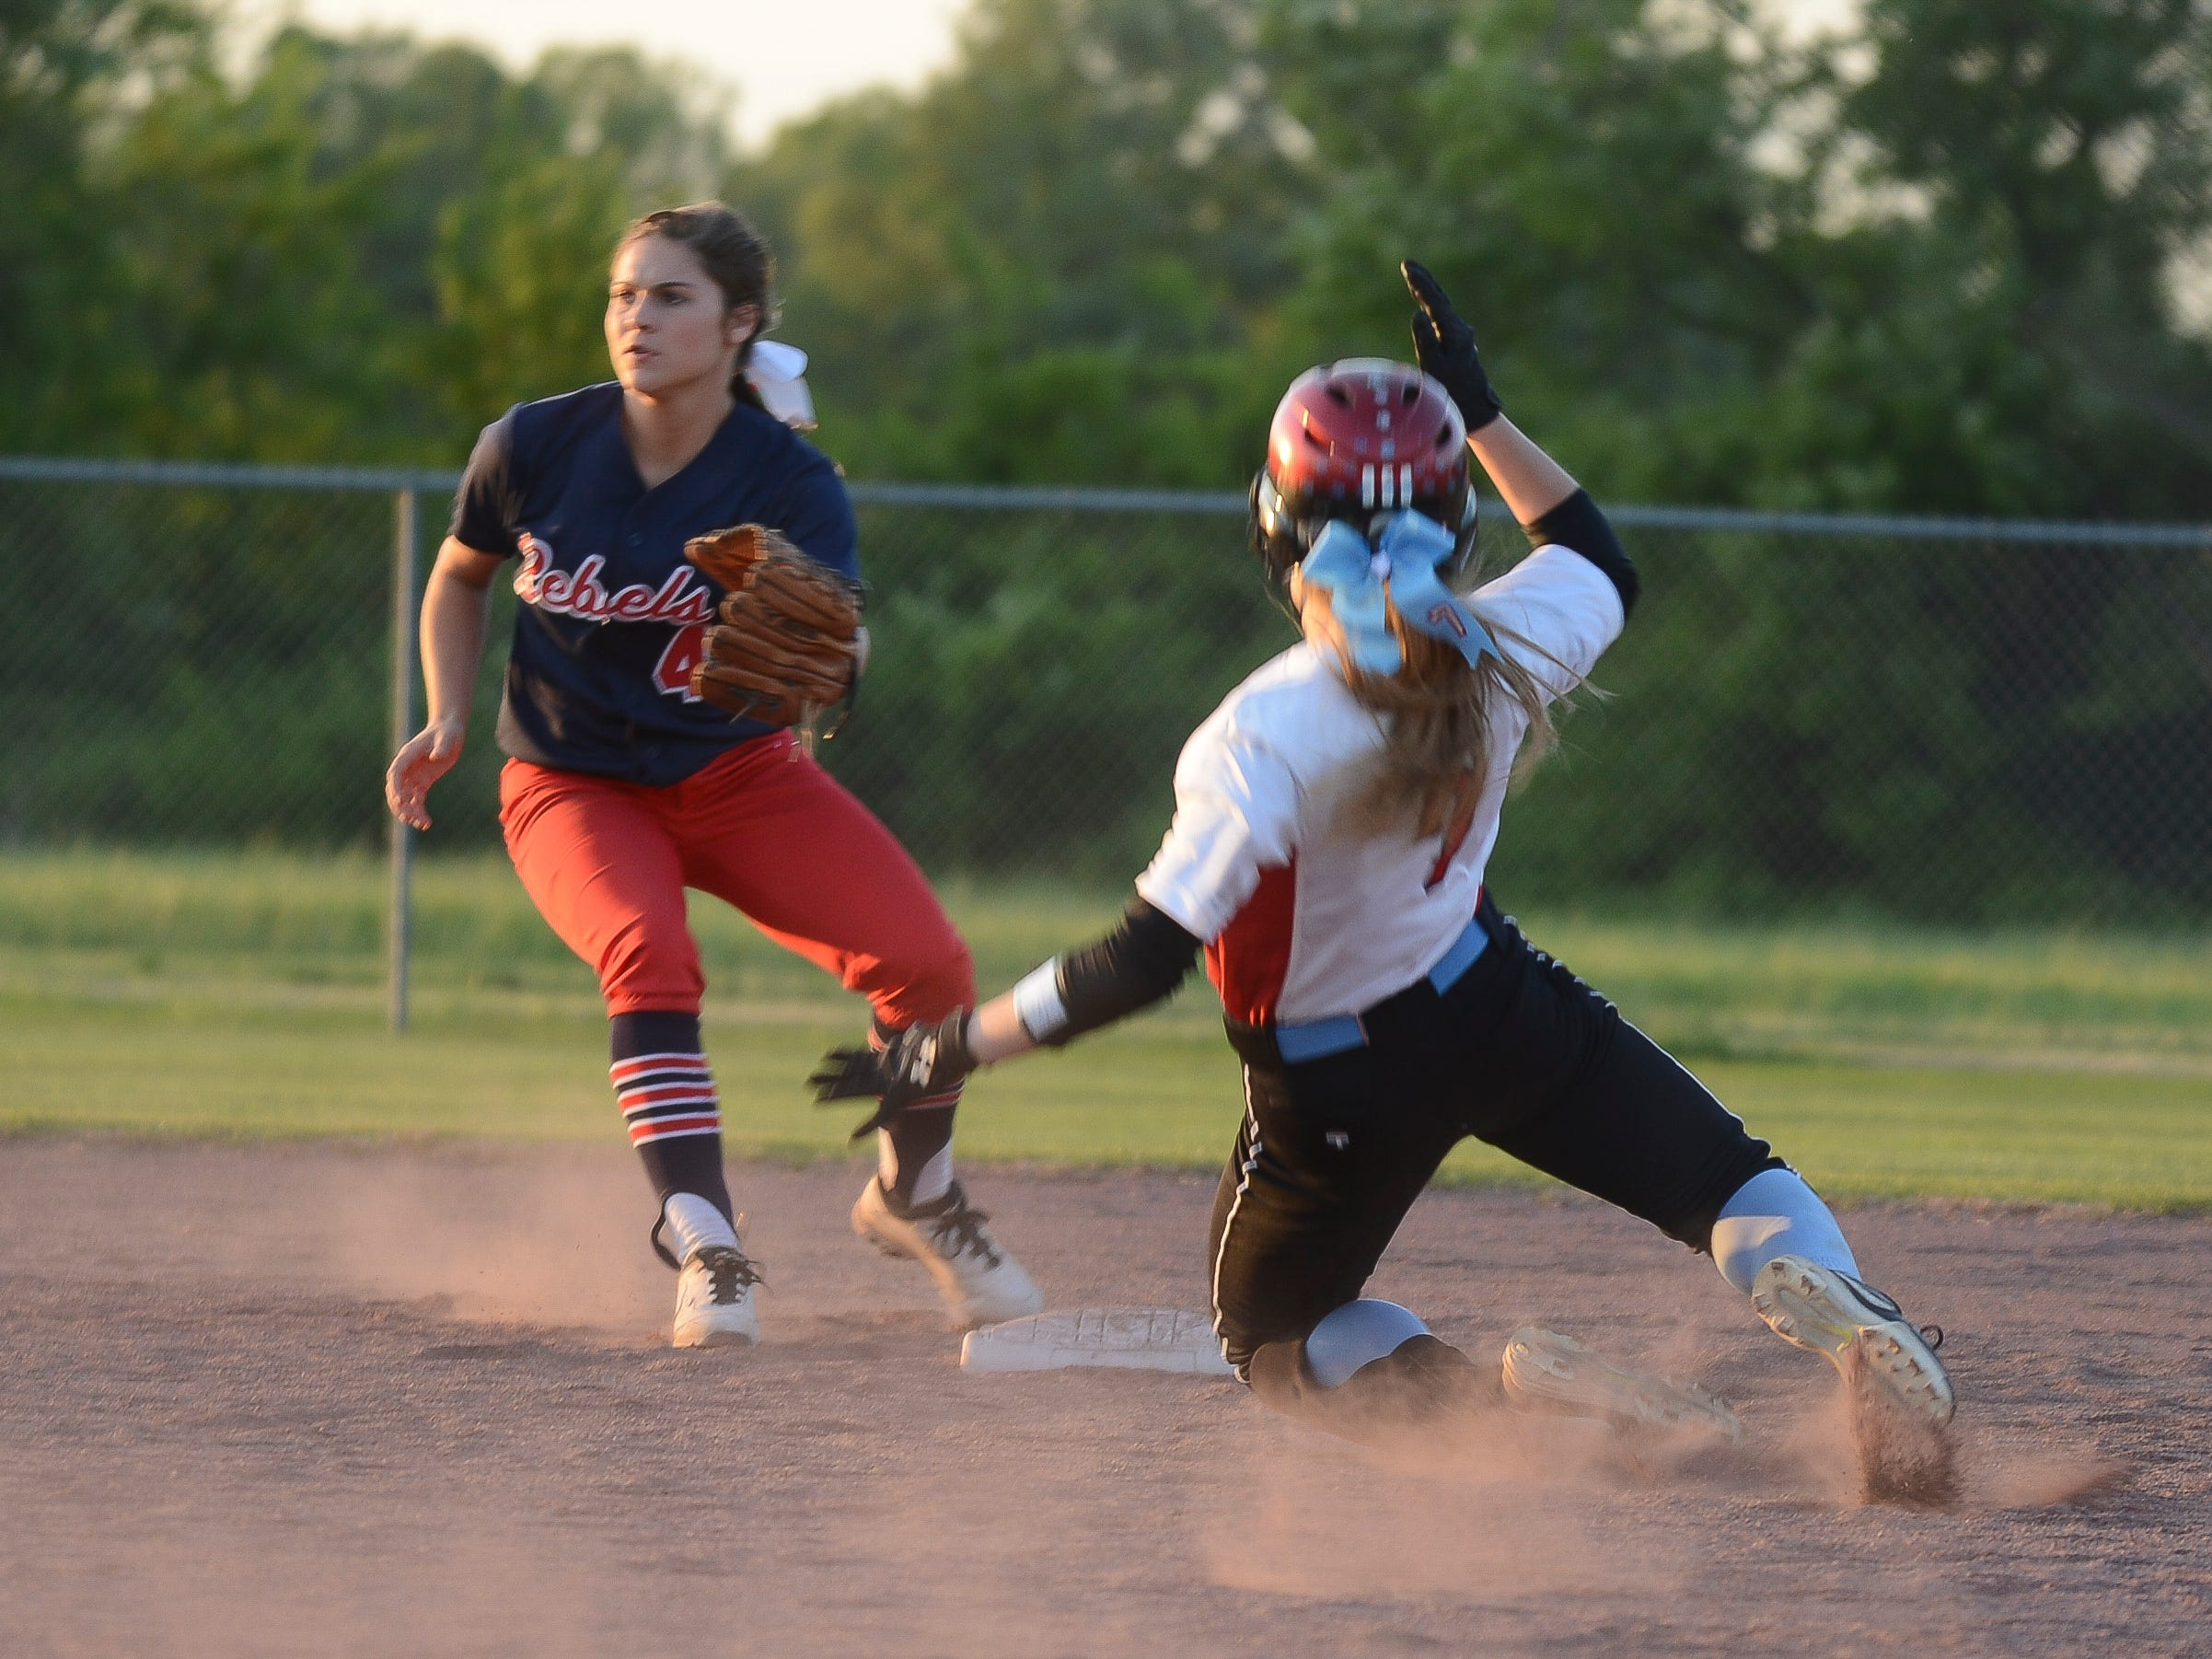 USJ's Addison Dunn slides into second base Tuesday evening during a game against Tipton-Rosemark.